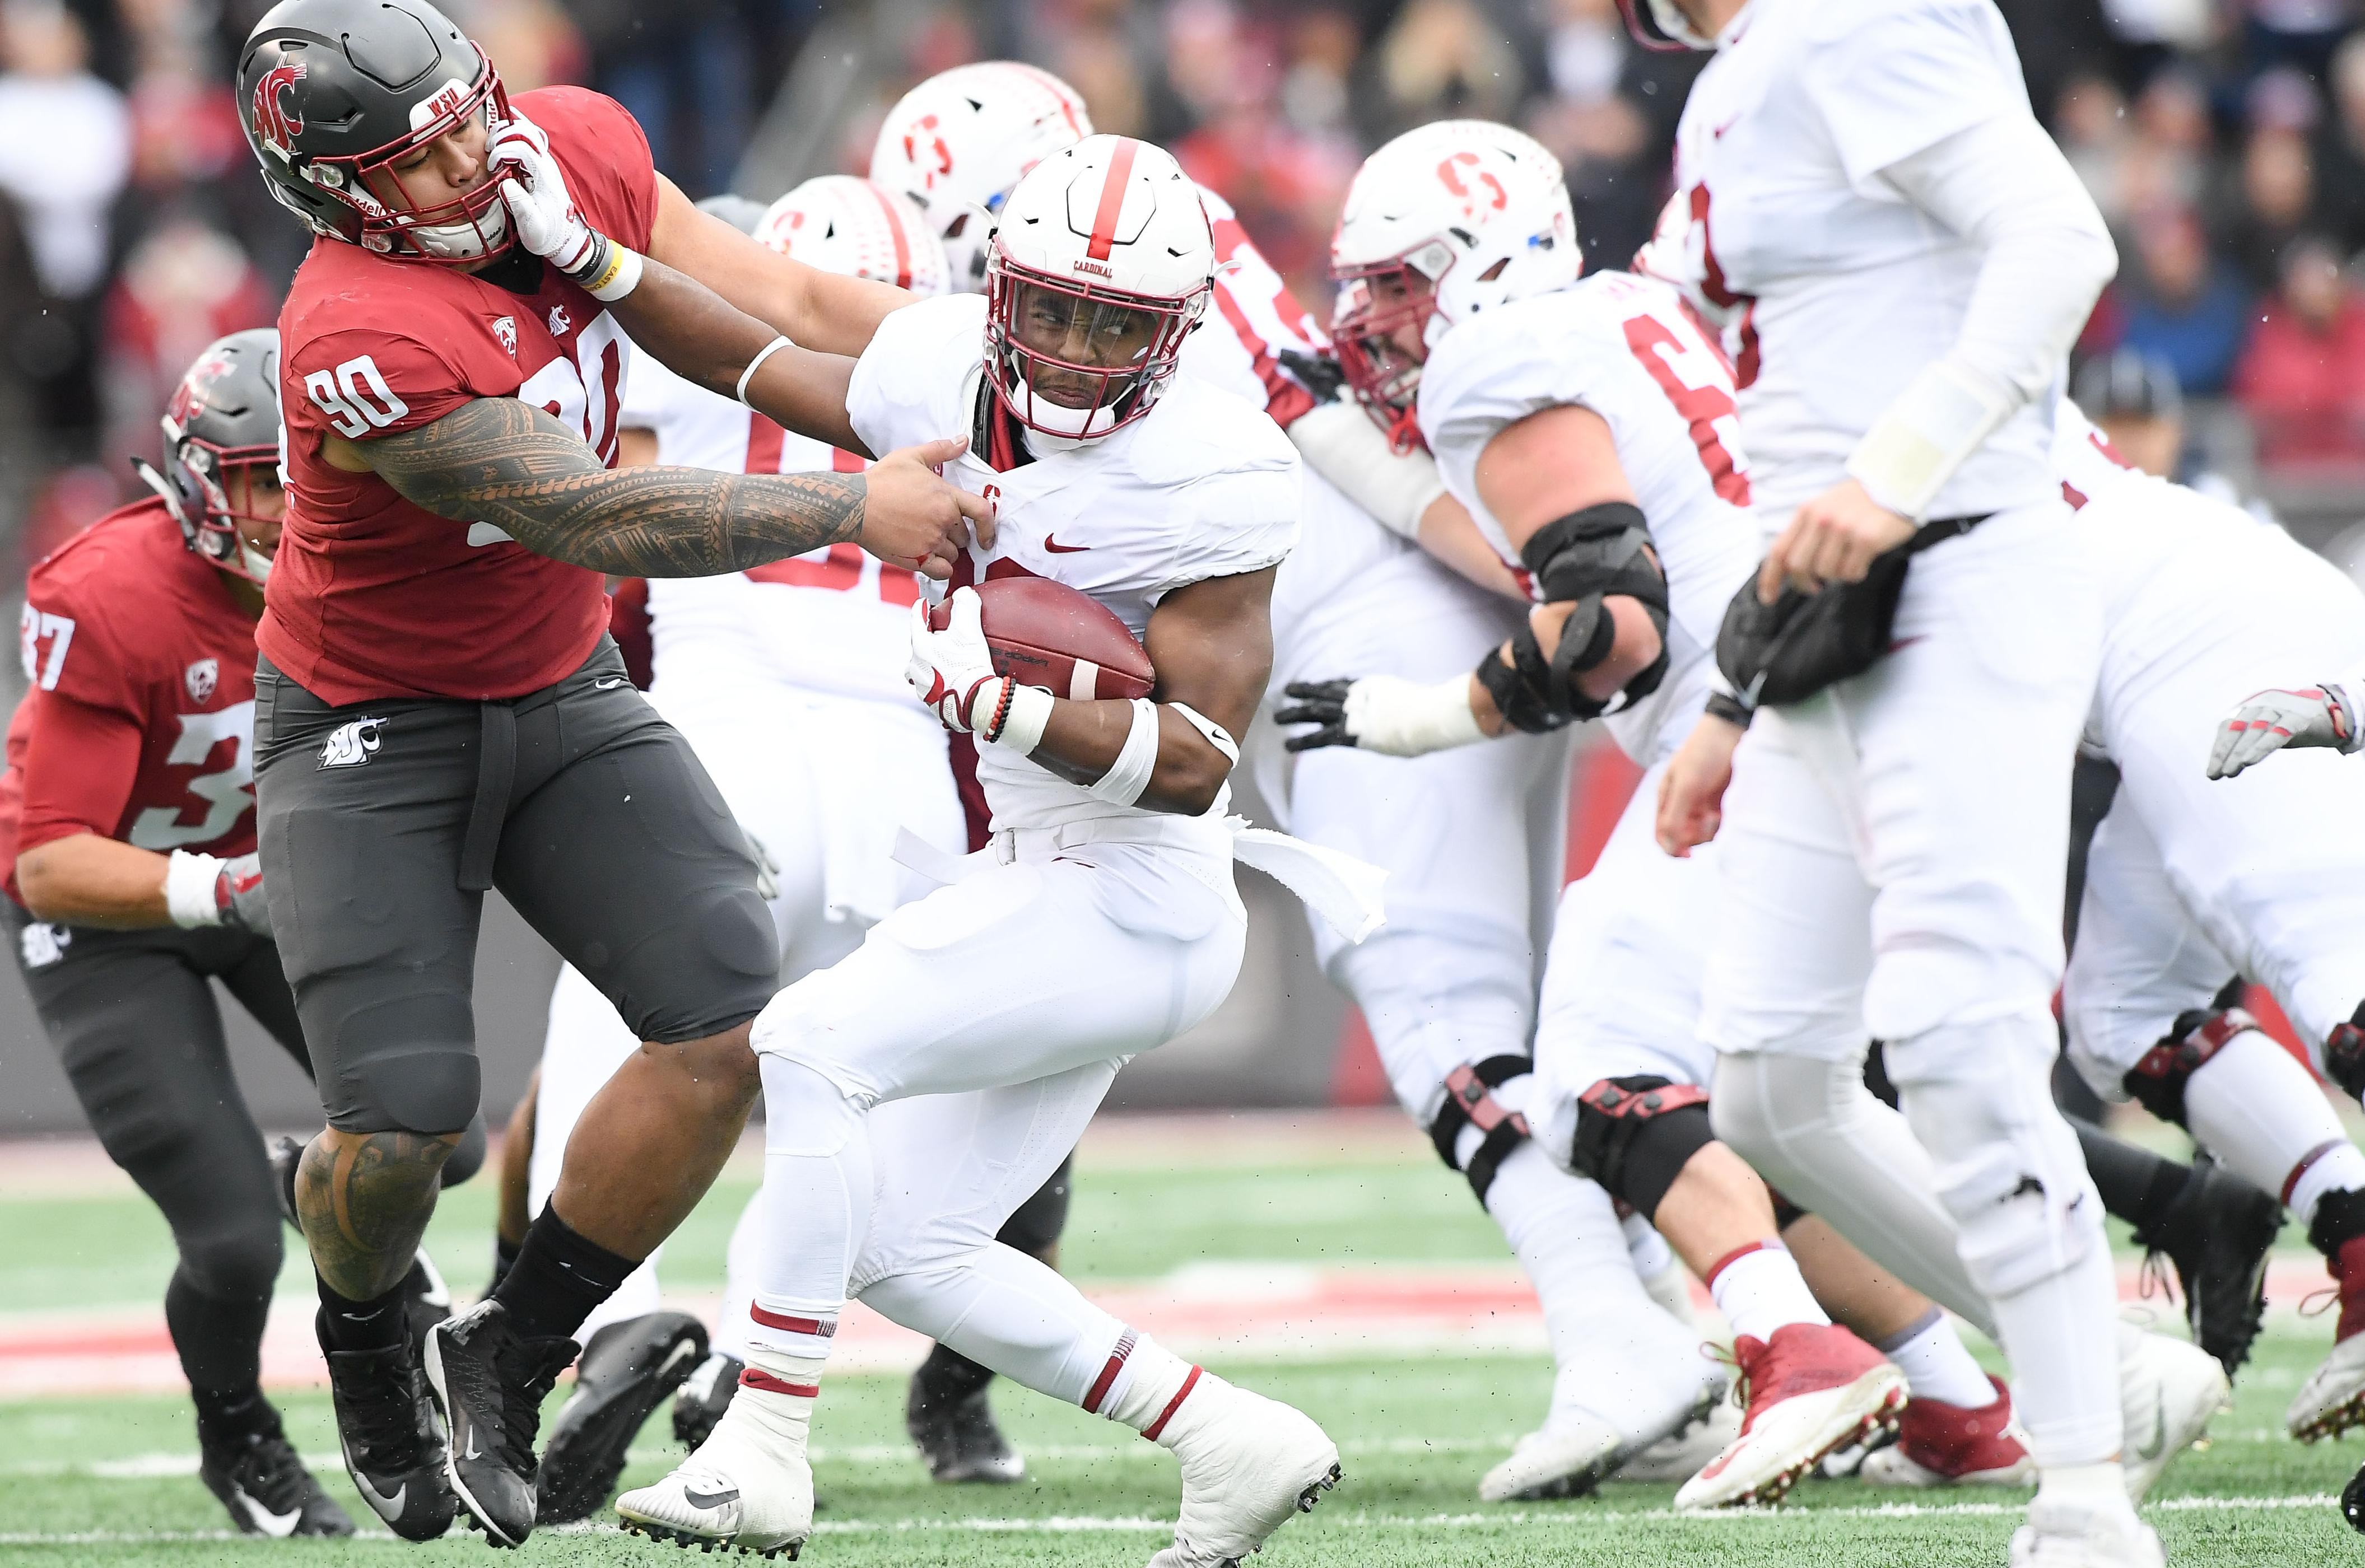 Cougars won by keeping Bryce Love in check | The Spokesman